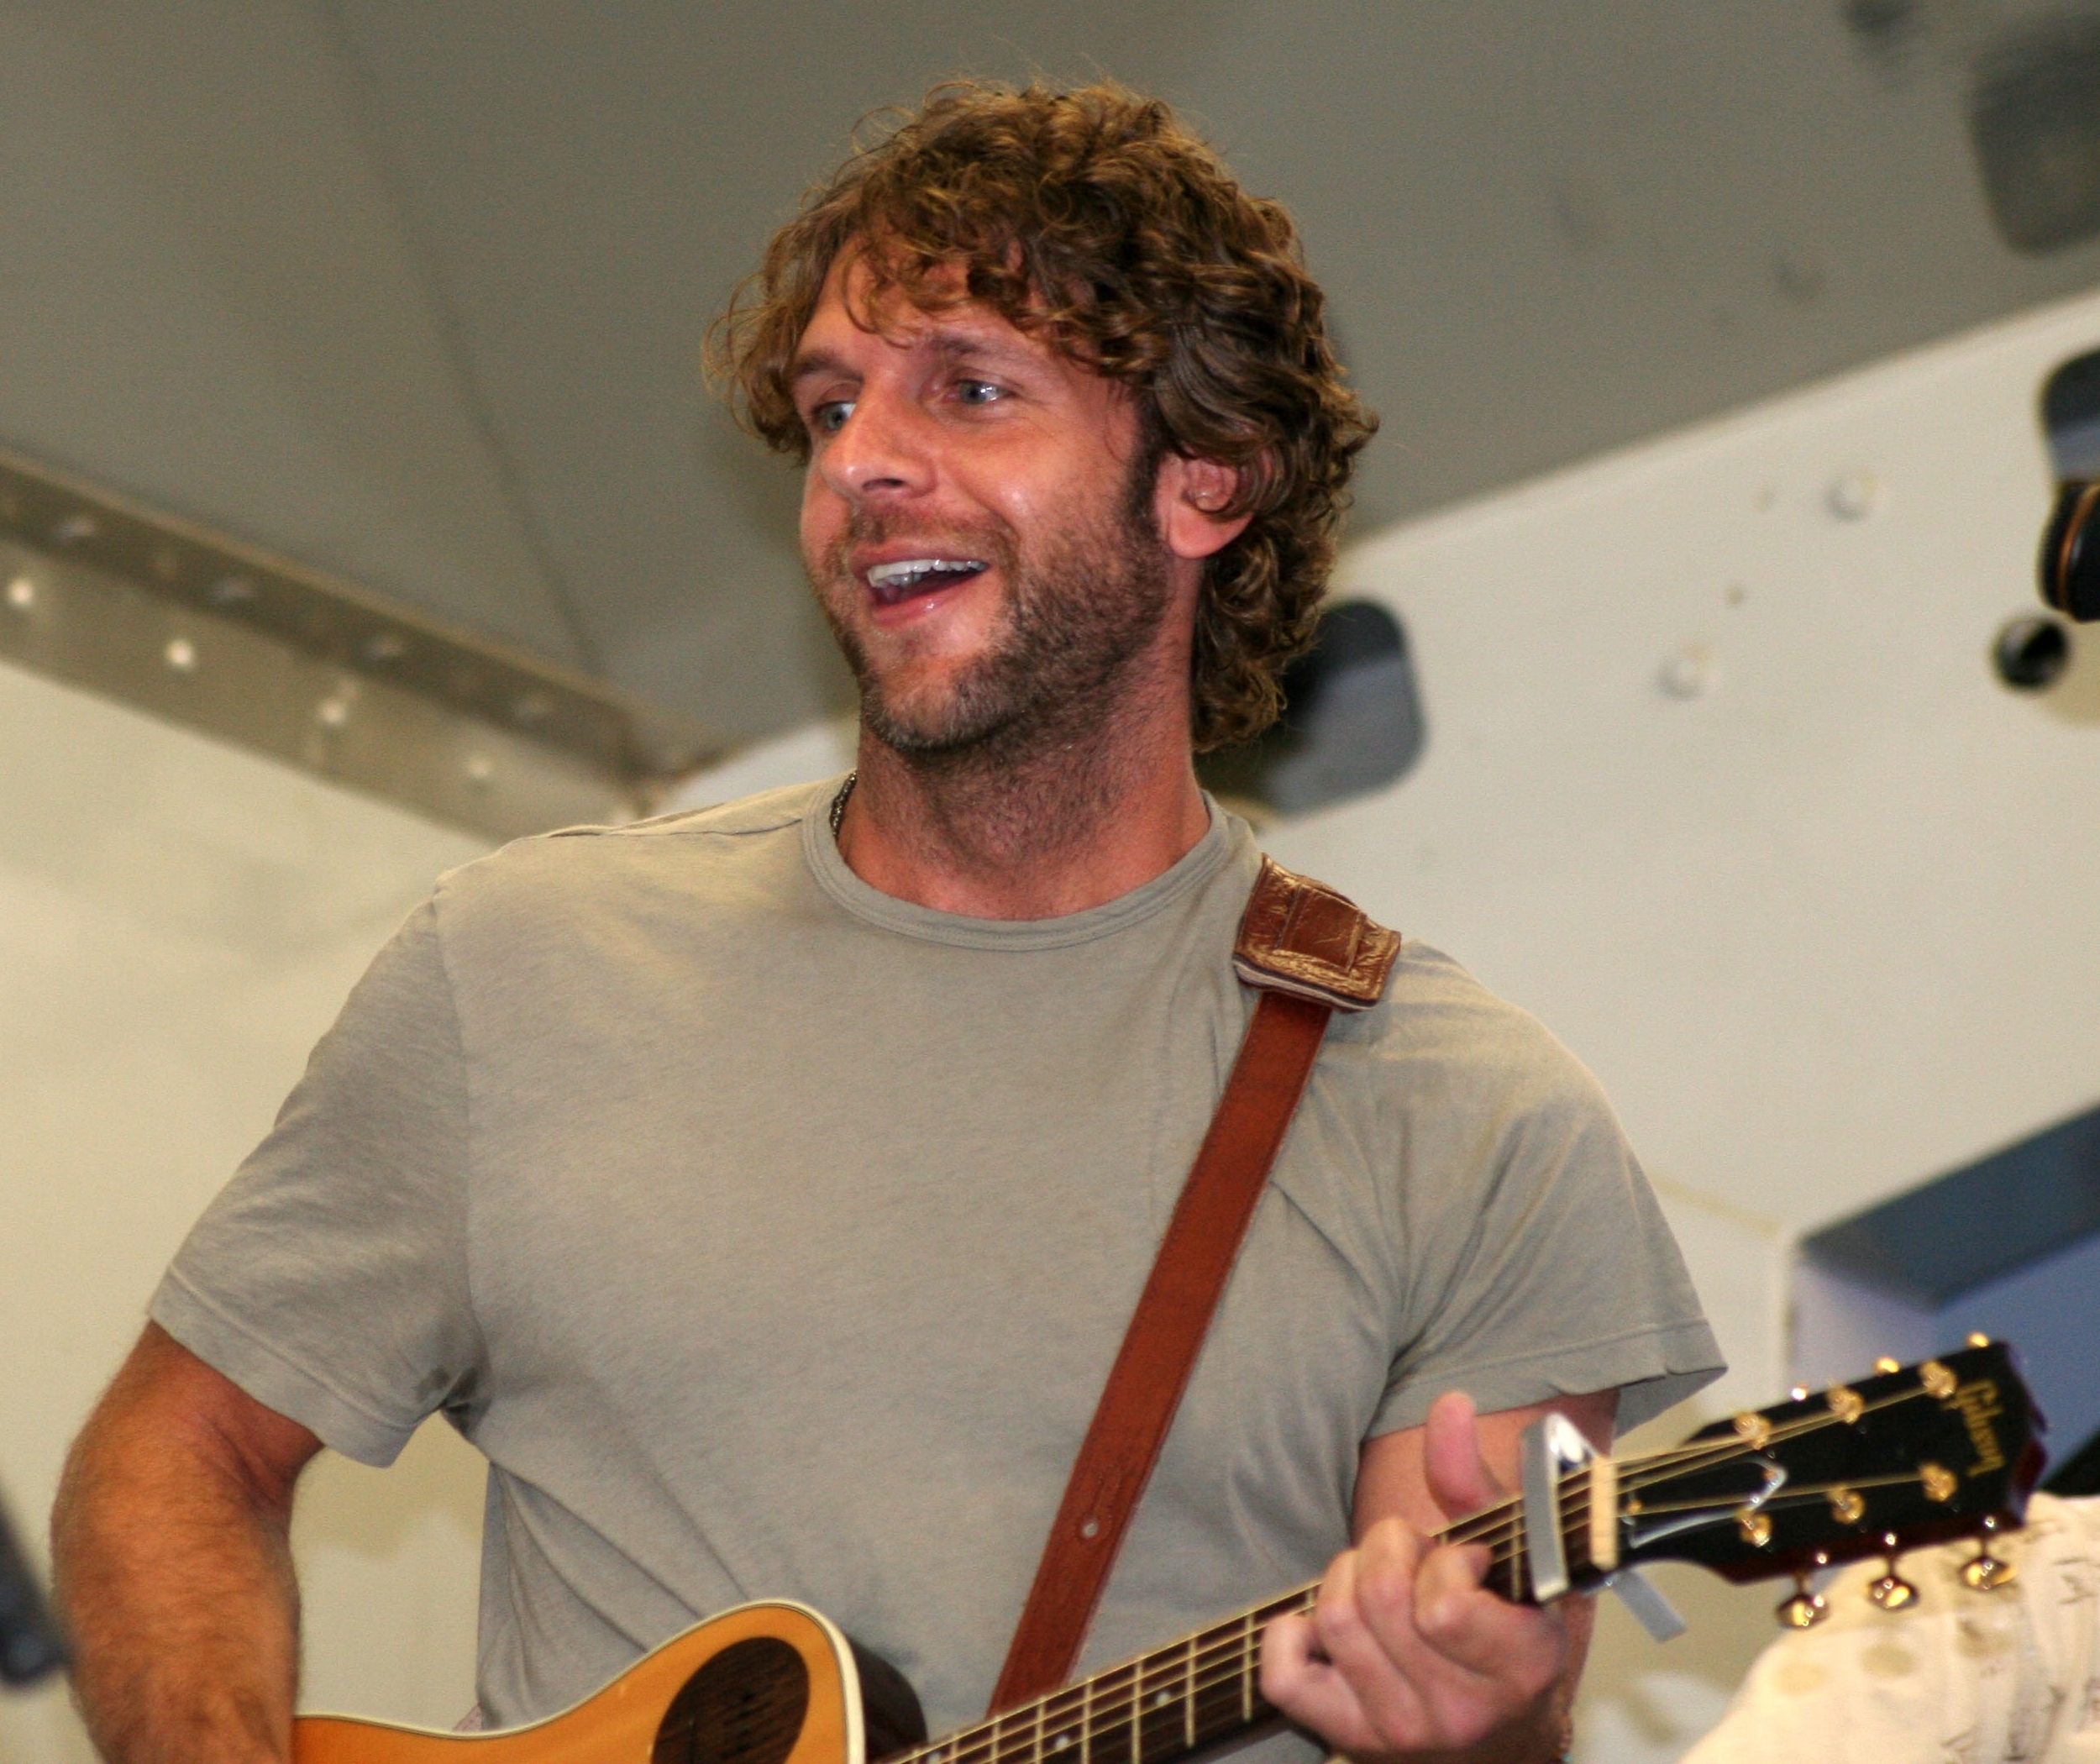 Billy Currington Guitar Chords Guitar Tabs And Lyrics Album From